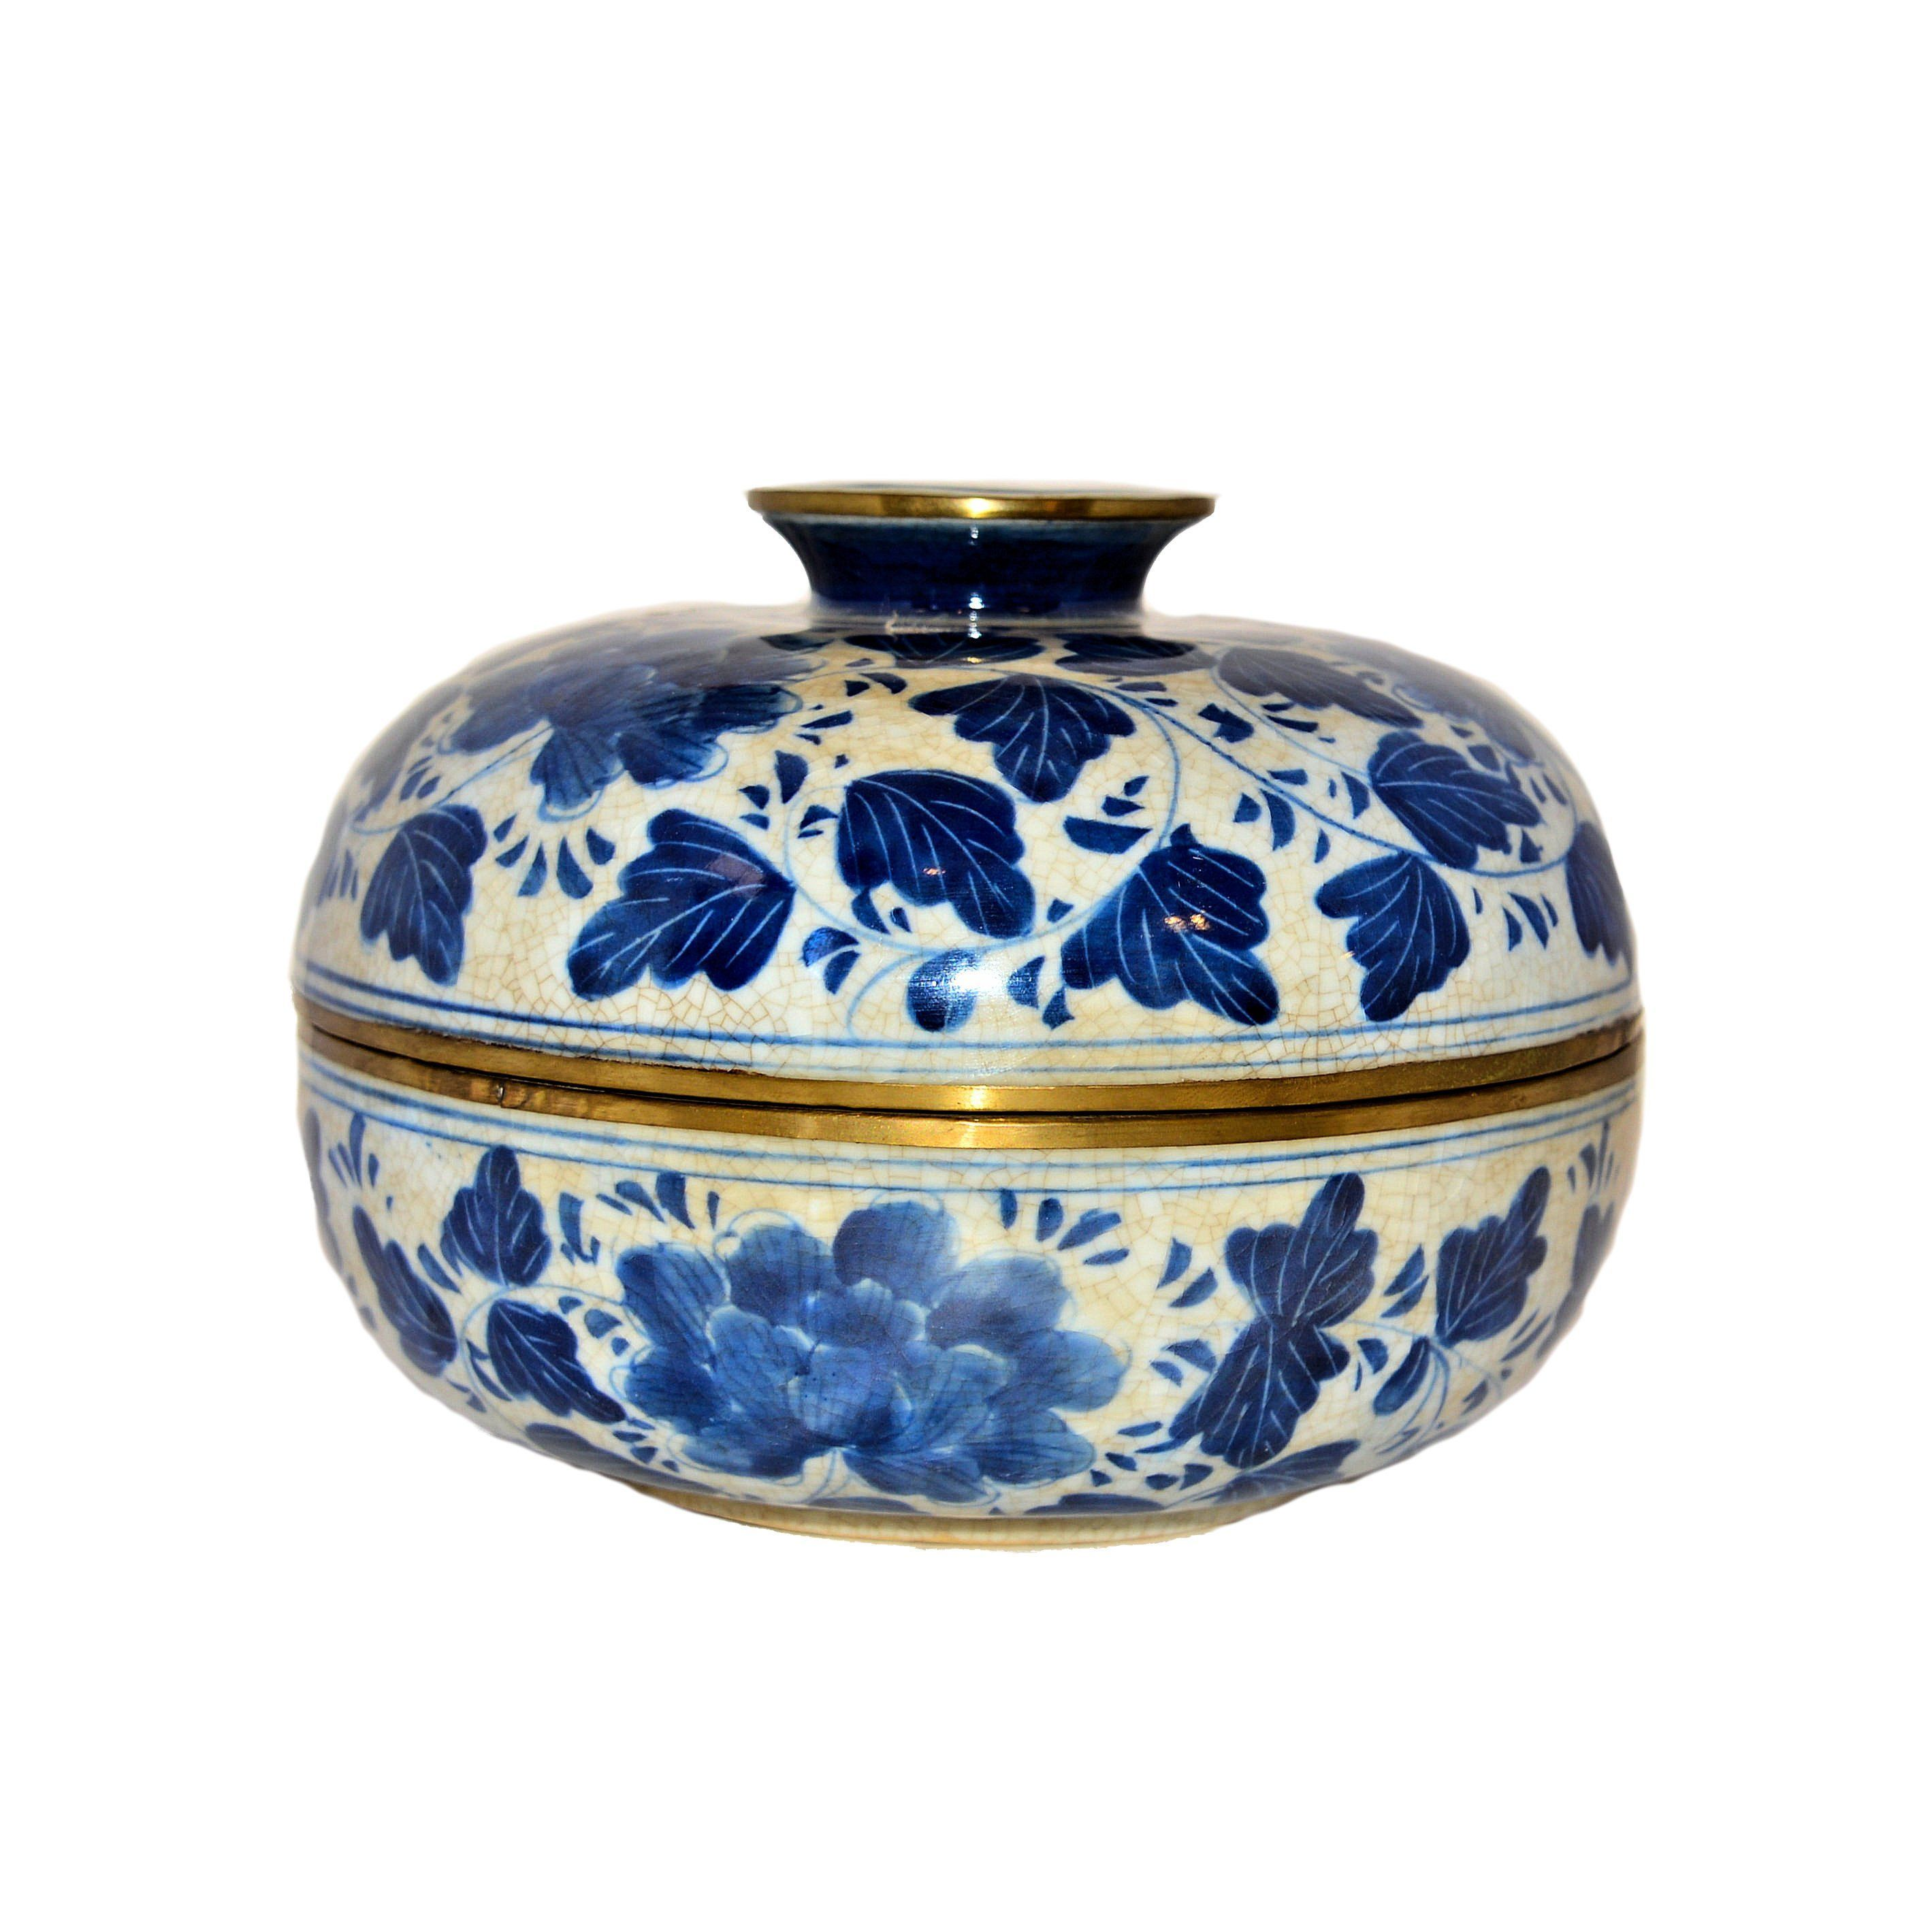 Antique Blue And White Ceramic Jar From Thailand Dimensions 8 Wide X 5 50 High Weight 3 6 Lbs Azul Bule